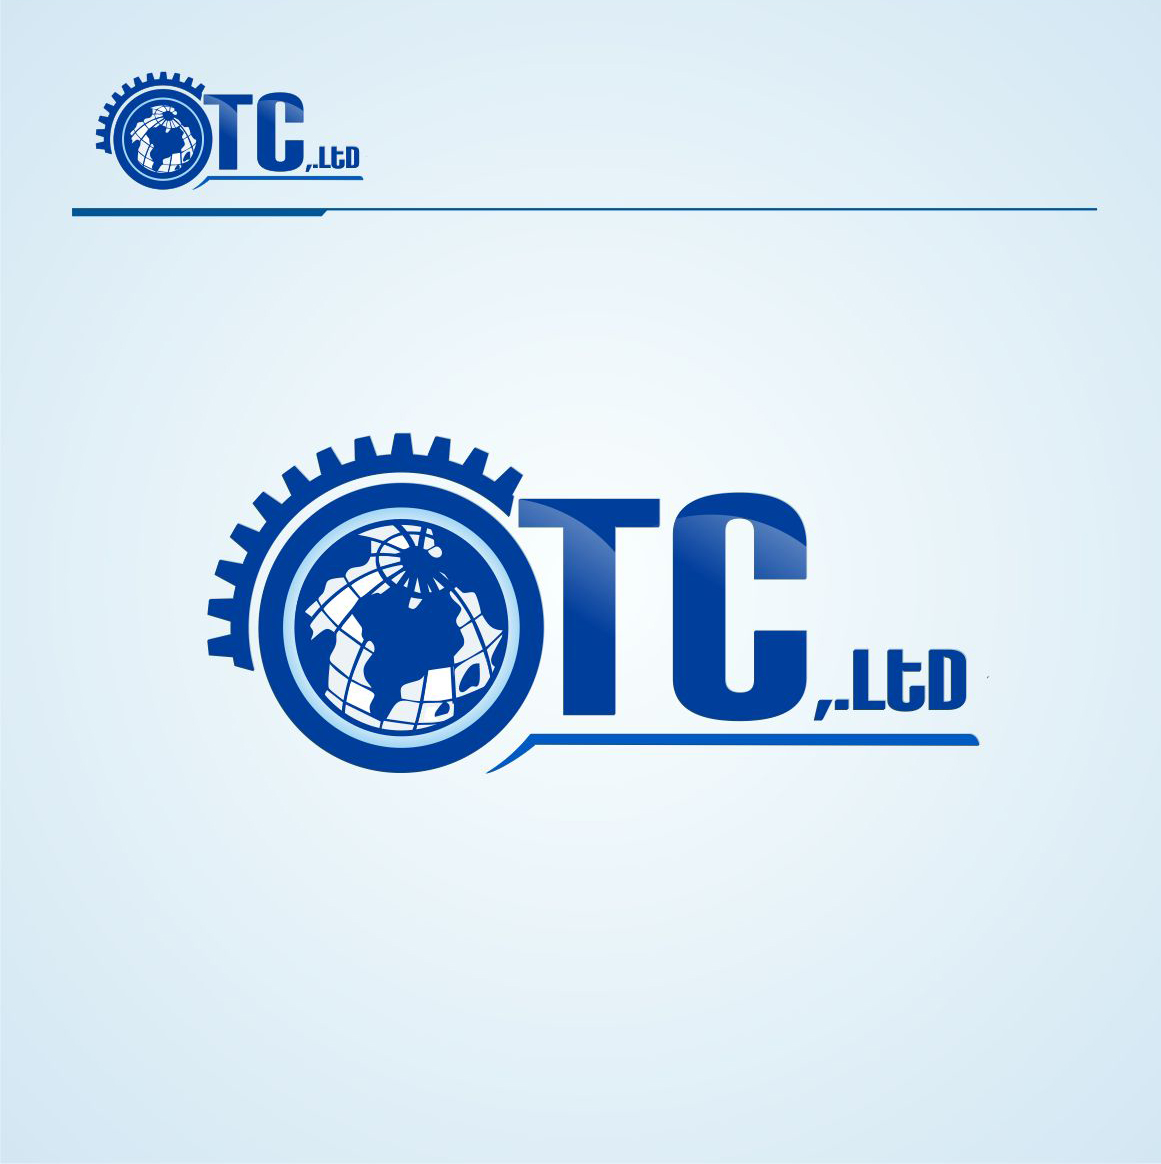 Logo Design by Private User - Entry No. 82 in the Logo Design Contest Unique Logo Design Wanted for OTC Co.,Ltd..